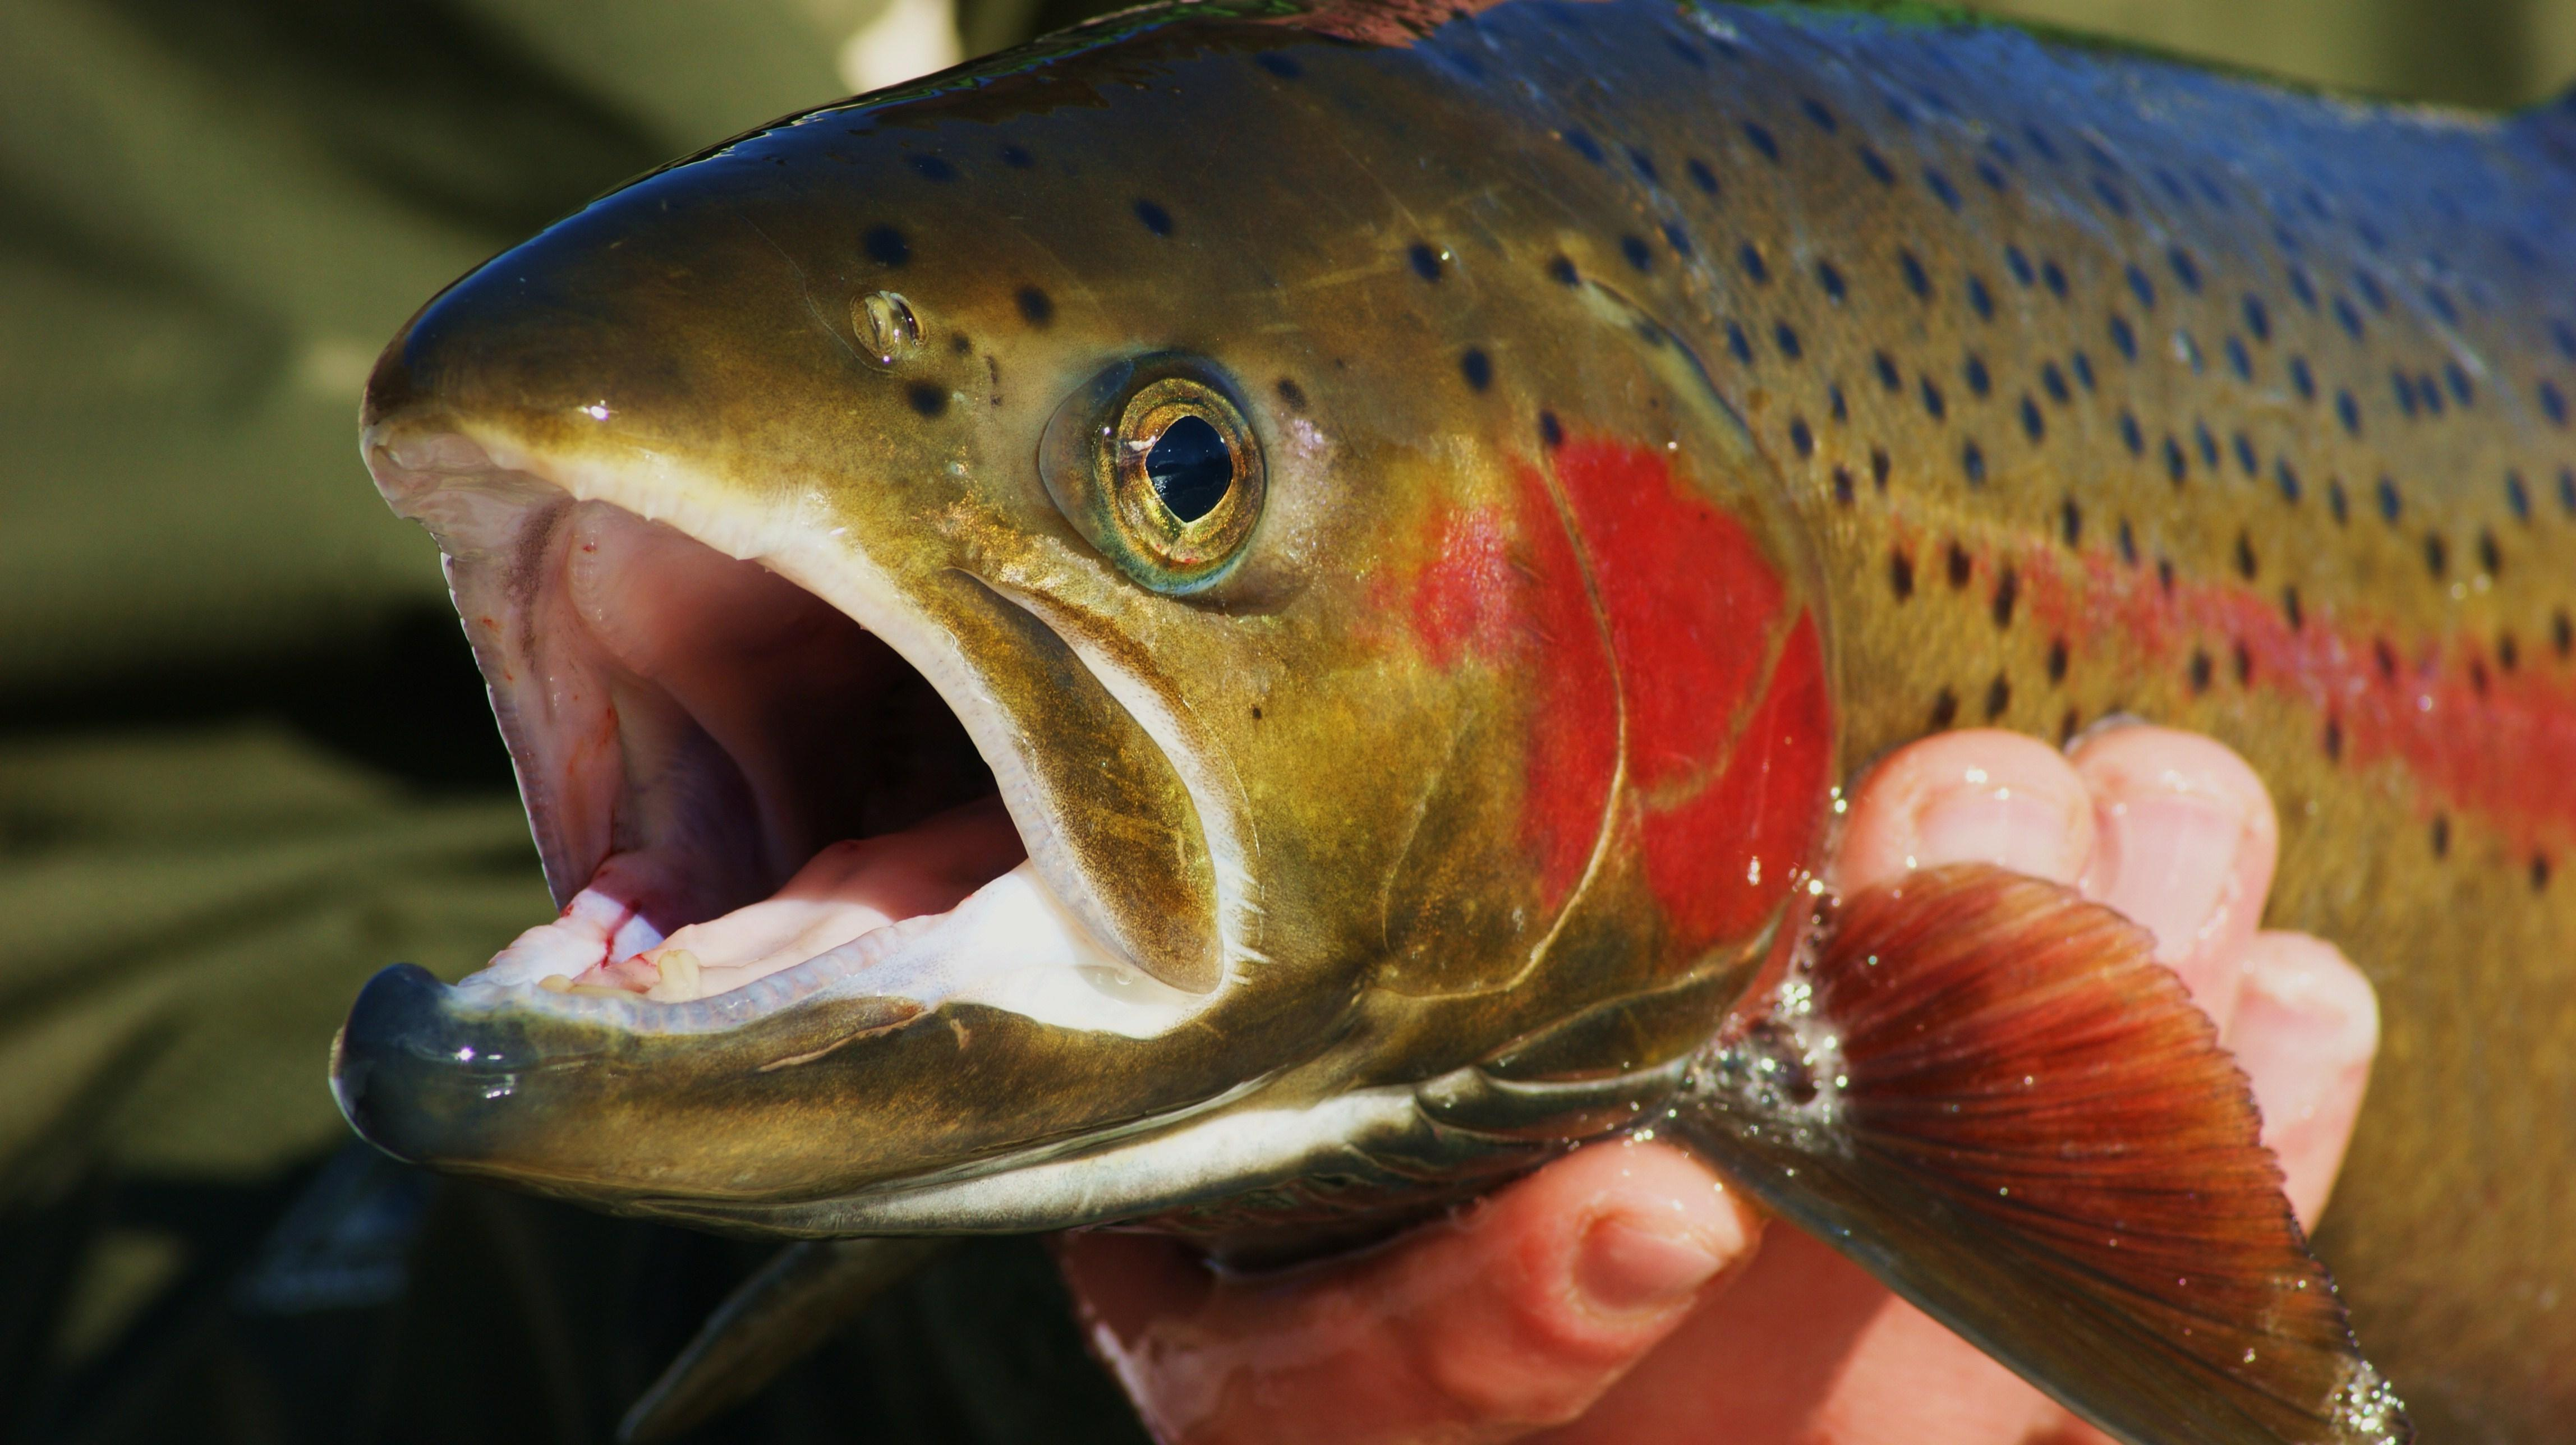 When cultured fish tastes as good as the wild delicious for What do wild fish eat